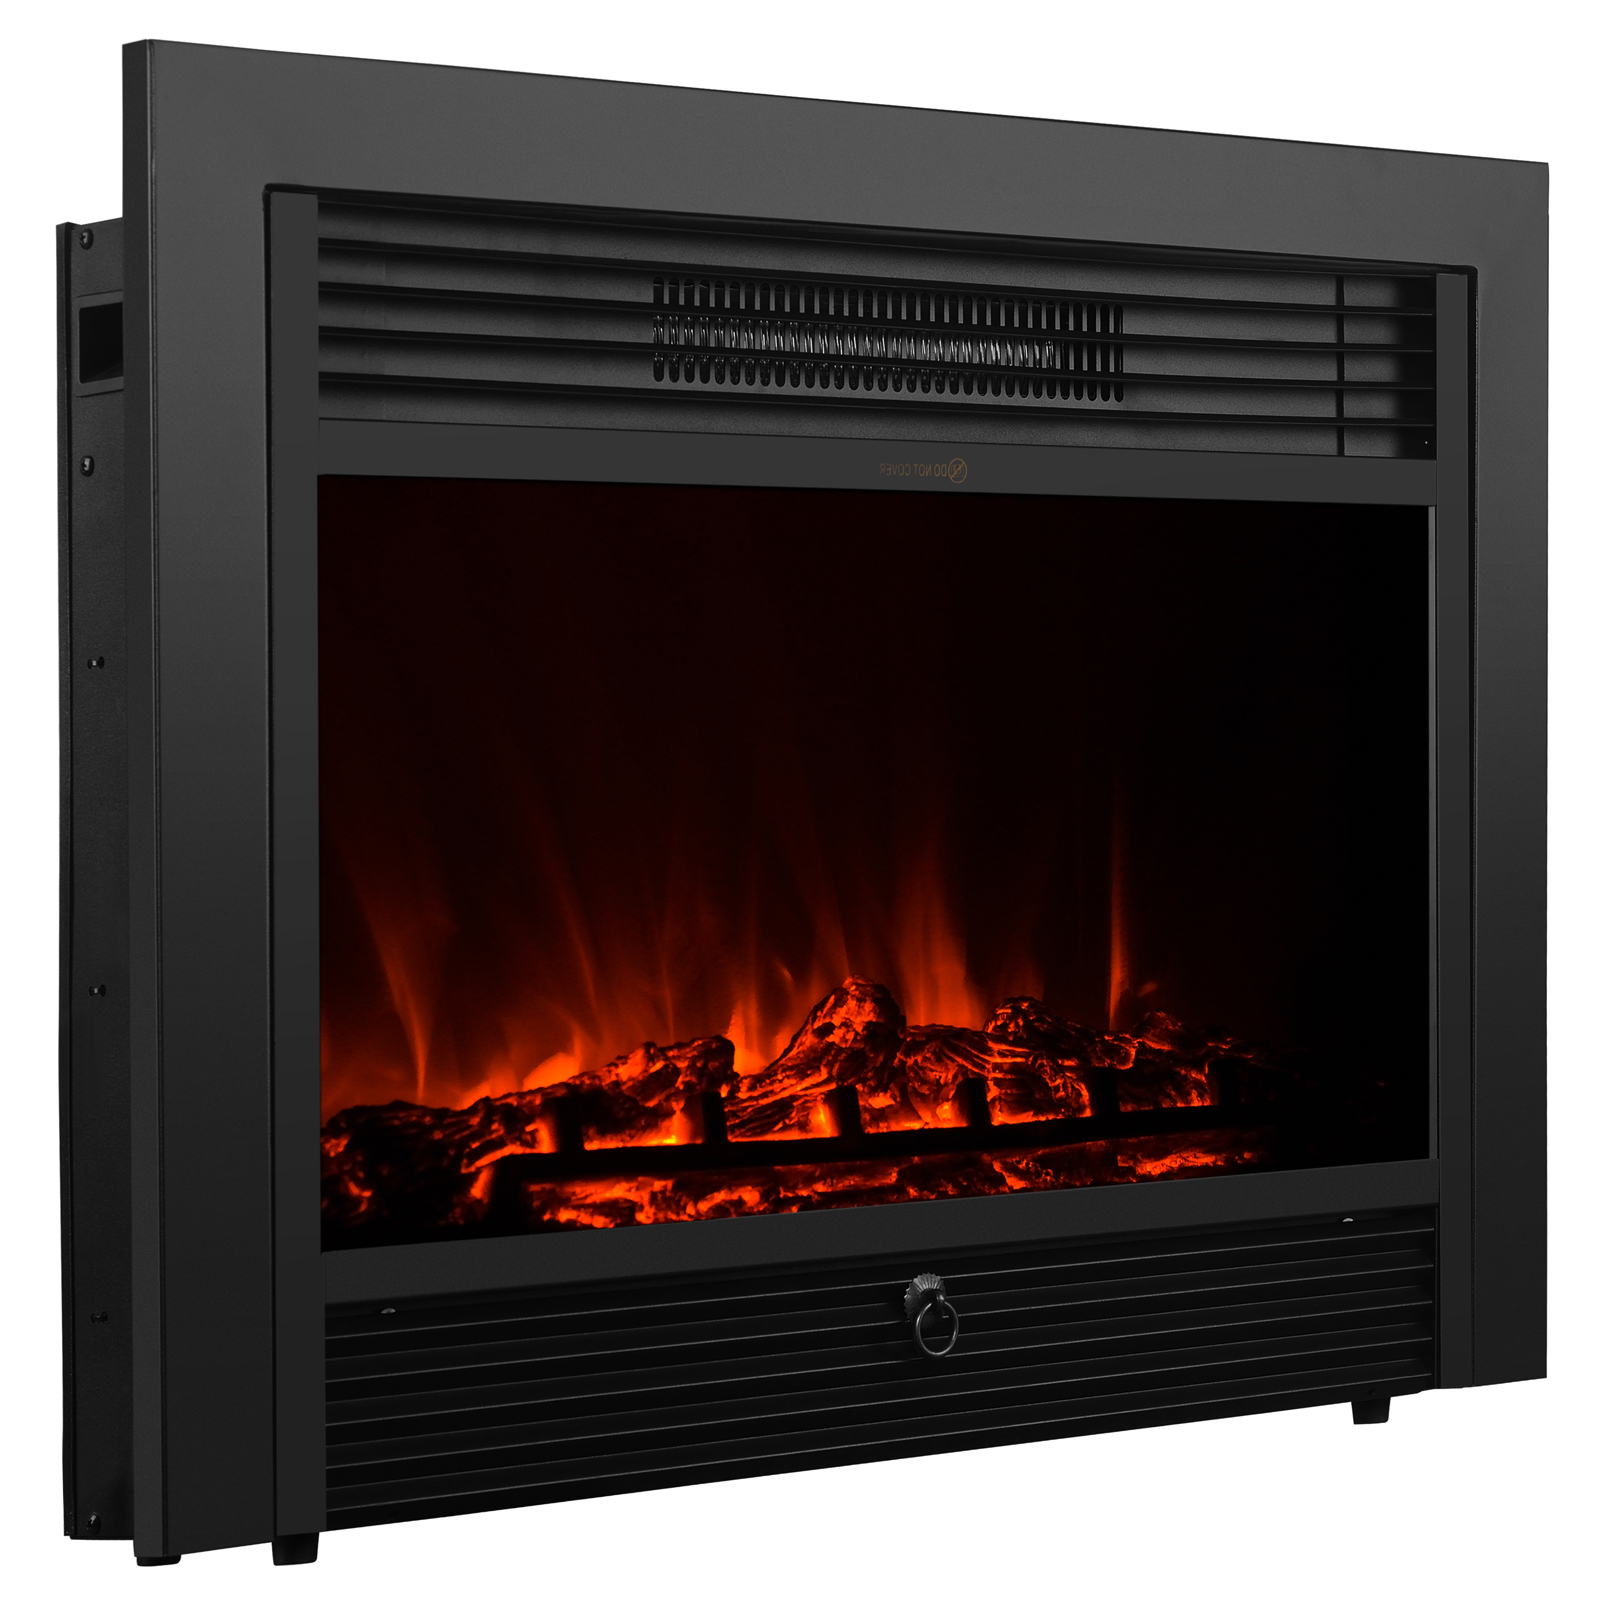 28 5 Embedded Electric Fireplace Insert Heater Glass View Log Flame W Remote Ebay